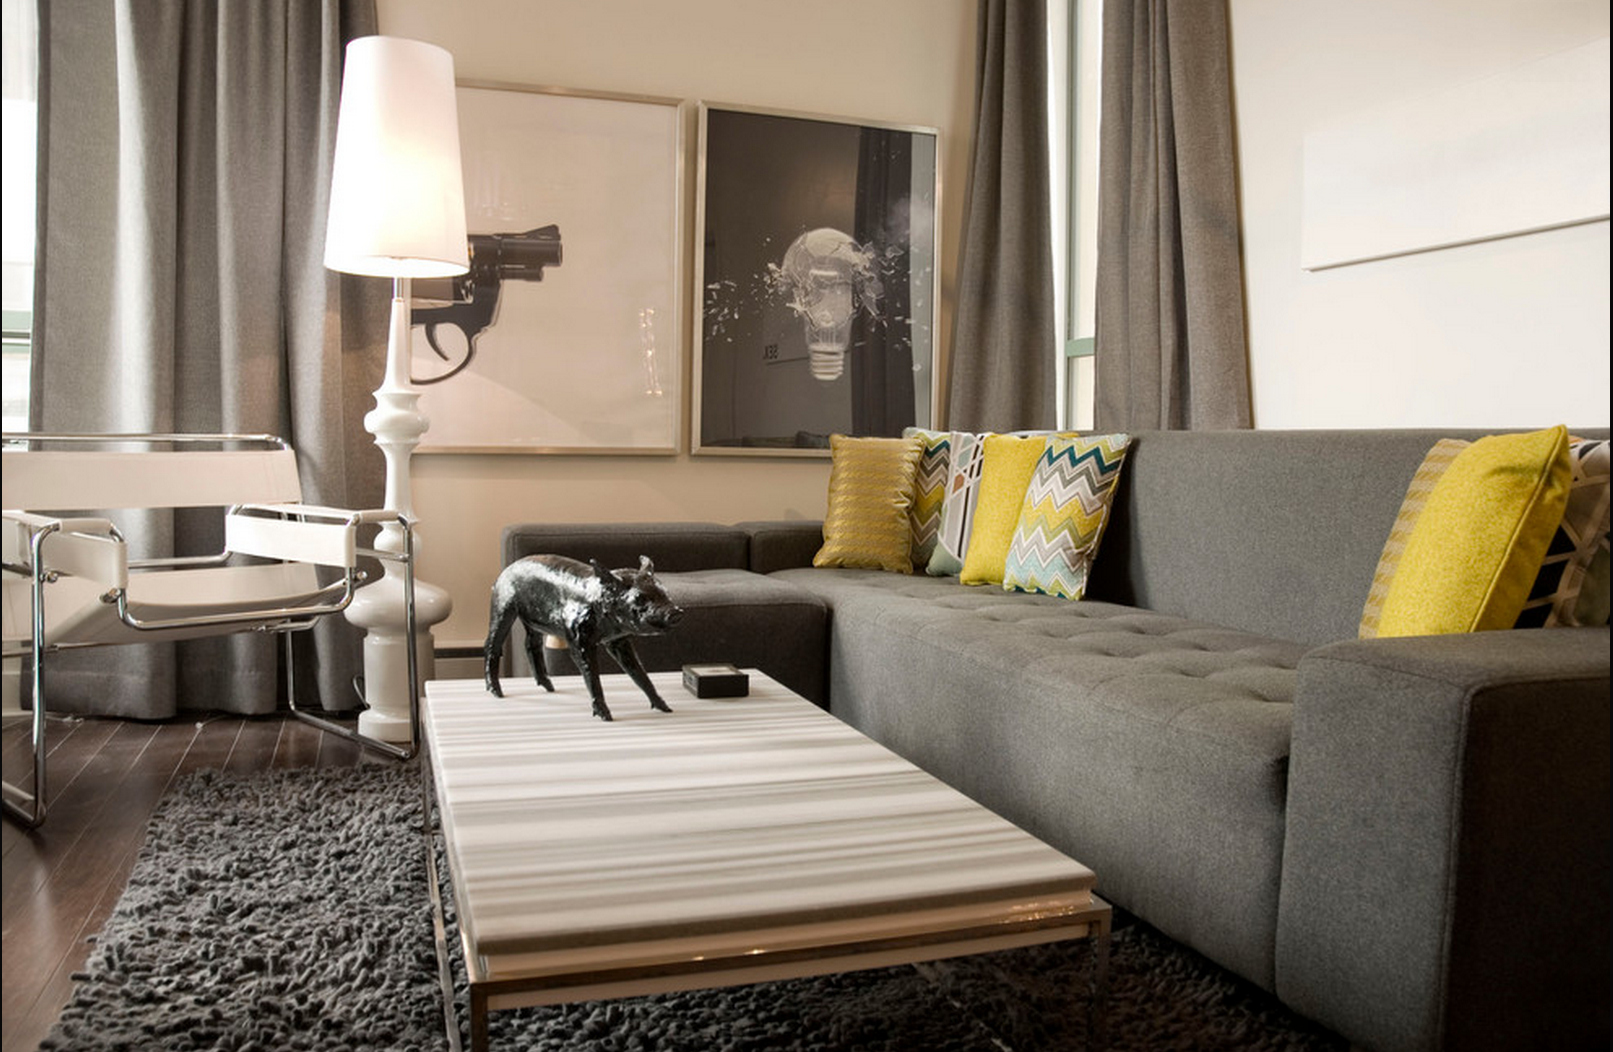 grey sofa decorations best for cats with claws modern decor gray couch walls just decorate